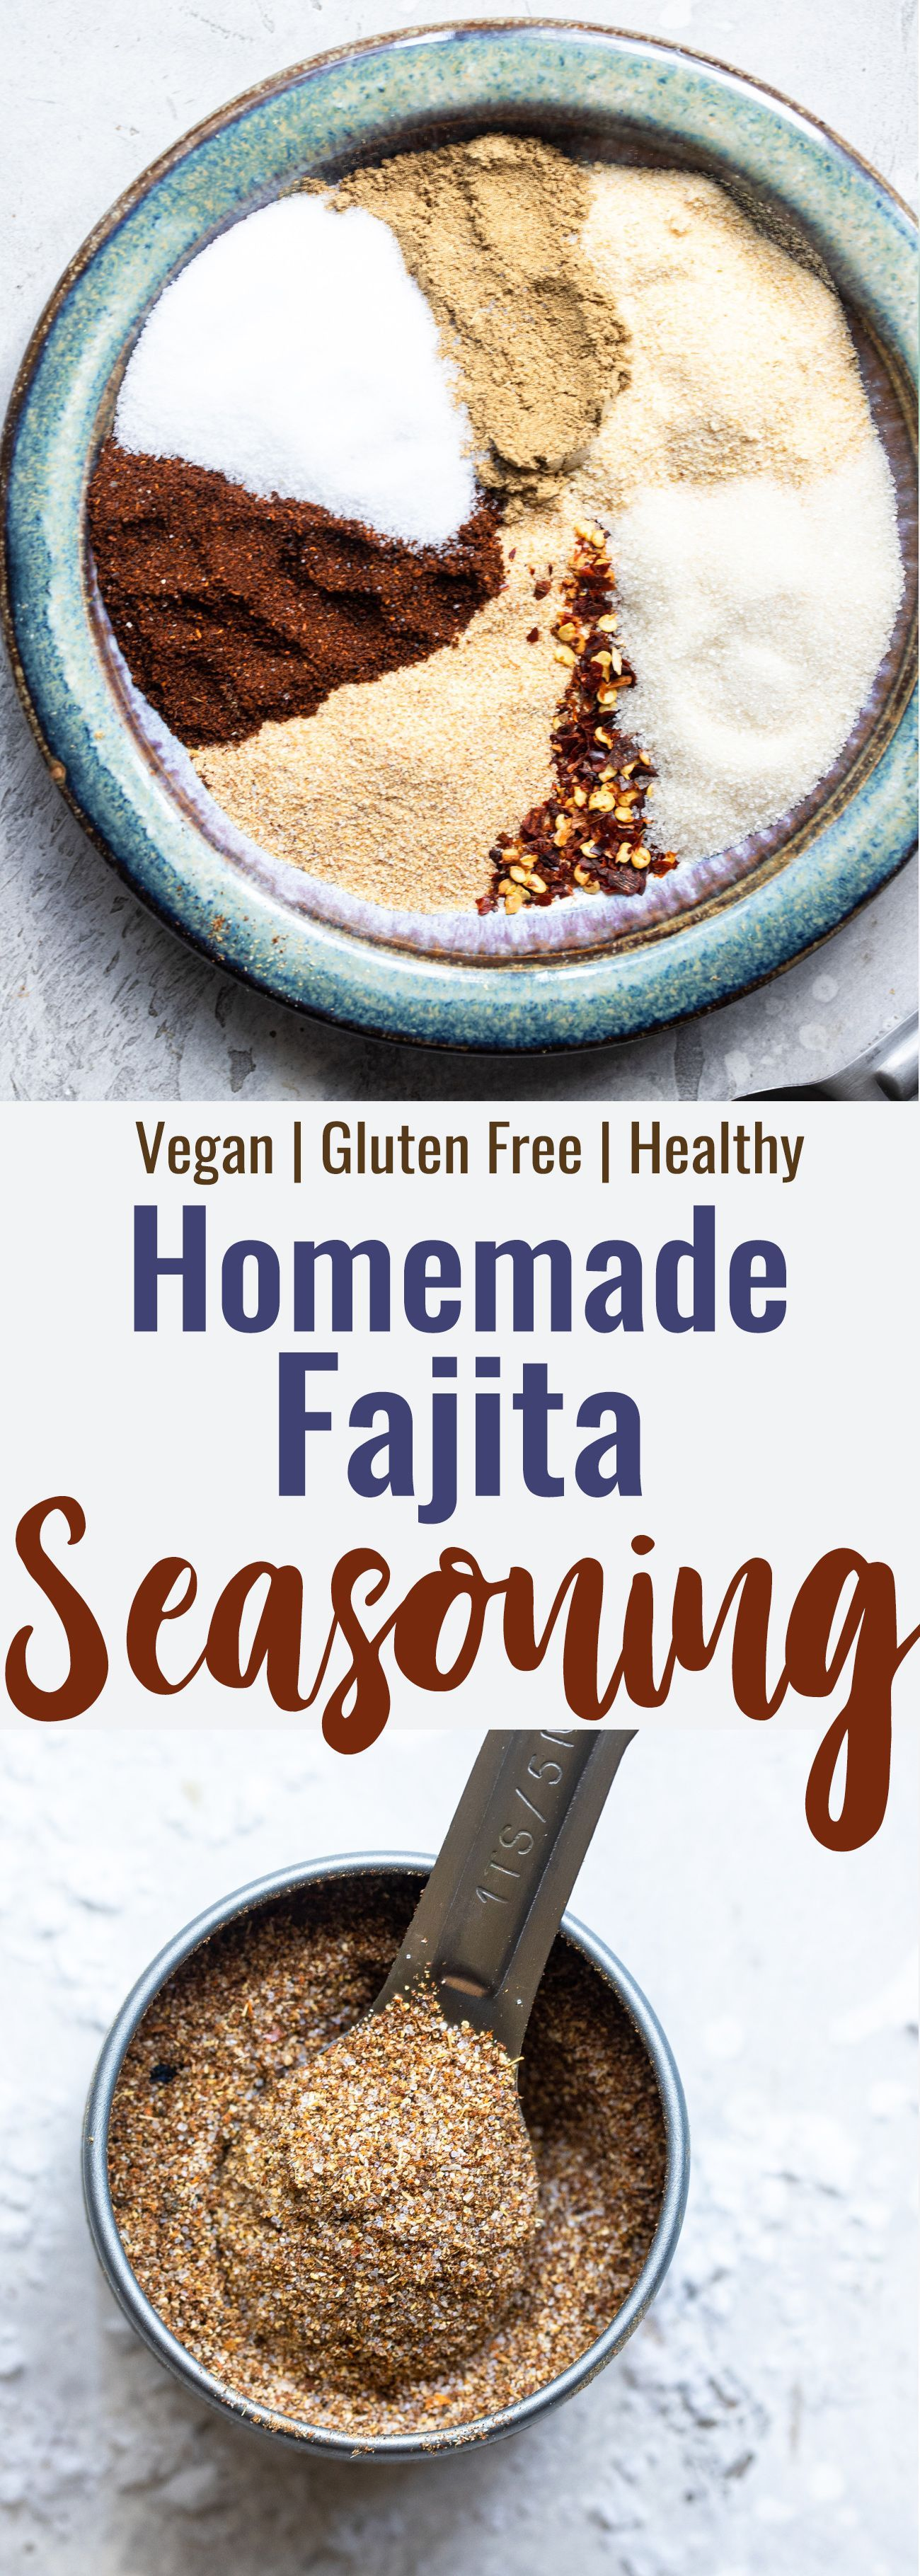 Easy Homemade Fajita Seasoning Recipe - This will be your new go-to! Made with simple ingredients, gluten free, vegan and better and healthier than store bought! | #Foodfaithfitness | #Vegan #glutenfree #healthy #dairyfree #mexican #homemadefajitaseasoning Easy Homemade Fajita Seasoning Recipe - This will be your new go-to! Made with simple ingredients, gluten free, vegan and better and healthier than store bought! | #Foodfaithfitness | #Vegan #glutenfree #healthy #dairyfree #mexican #homemadefajitaseasoning